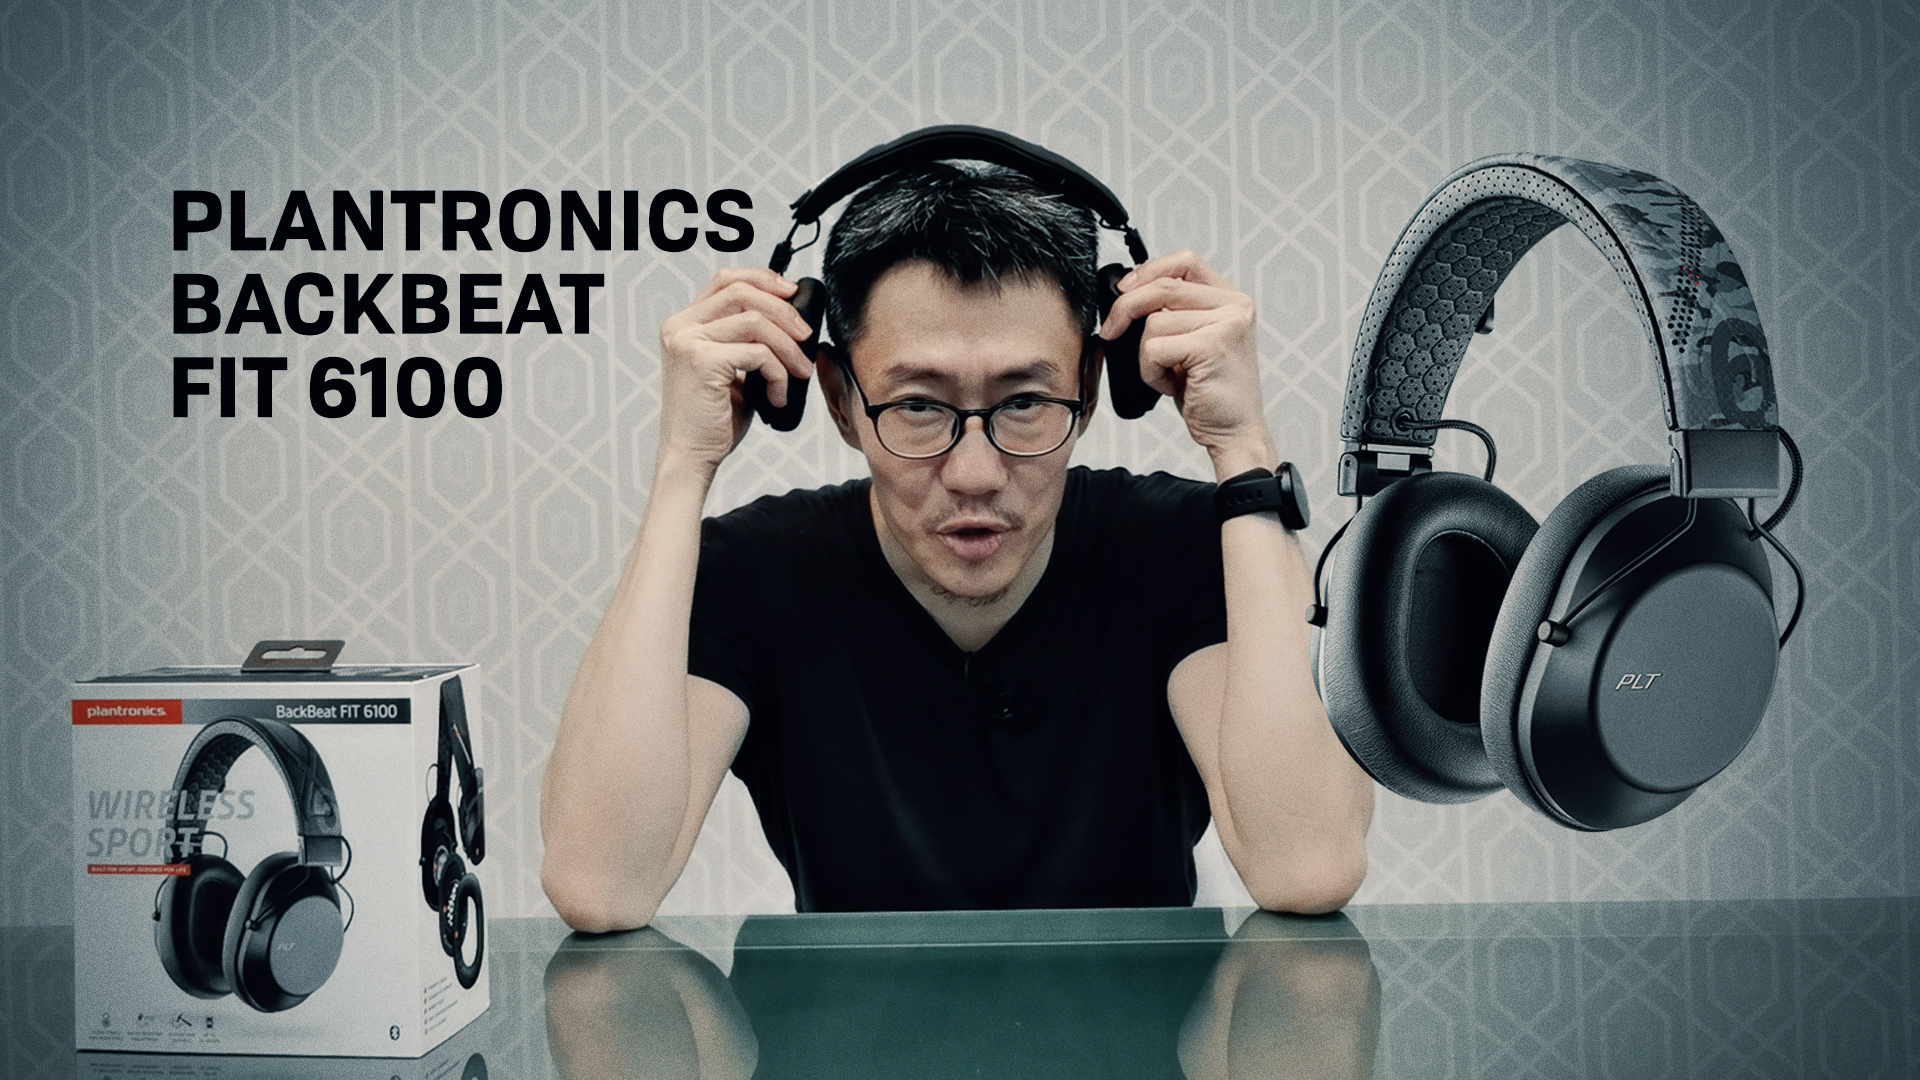 Plantronics BackBeat FIT 3200/6100 Video Review - Part 2